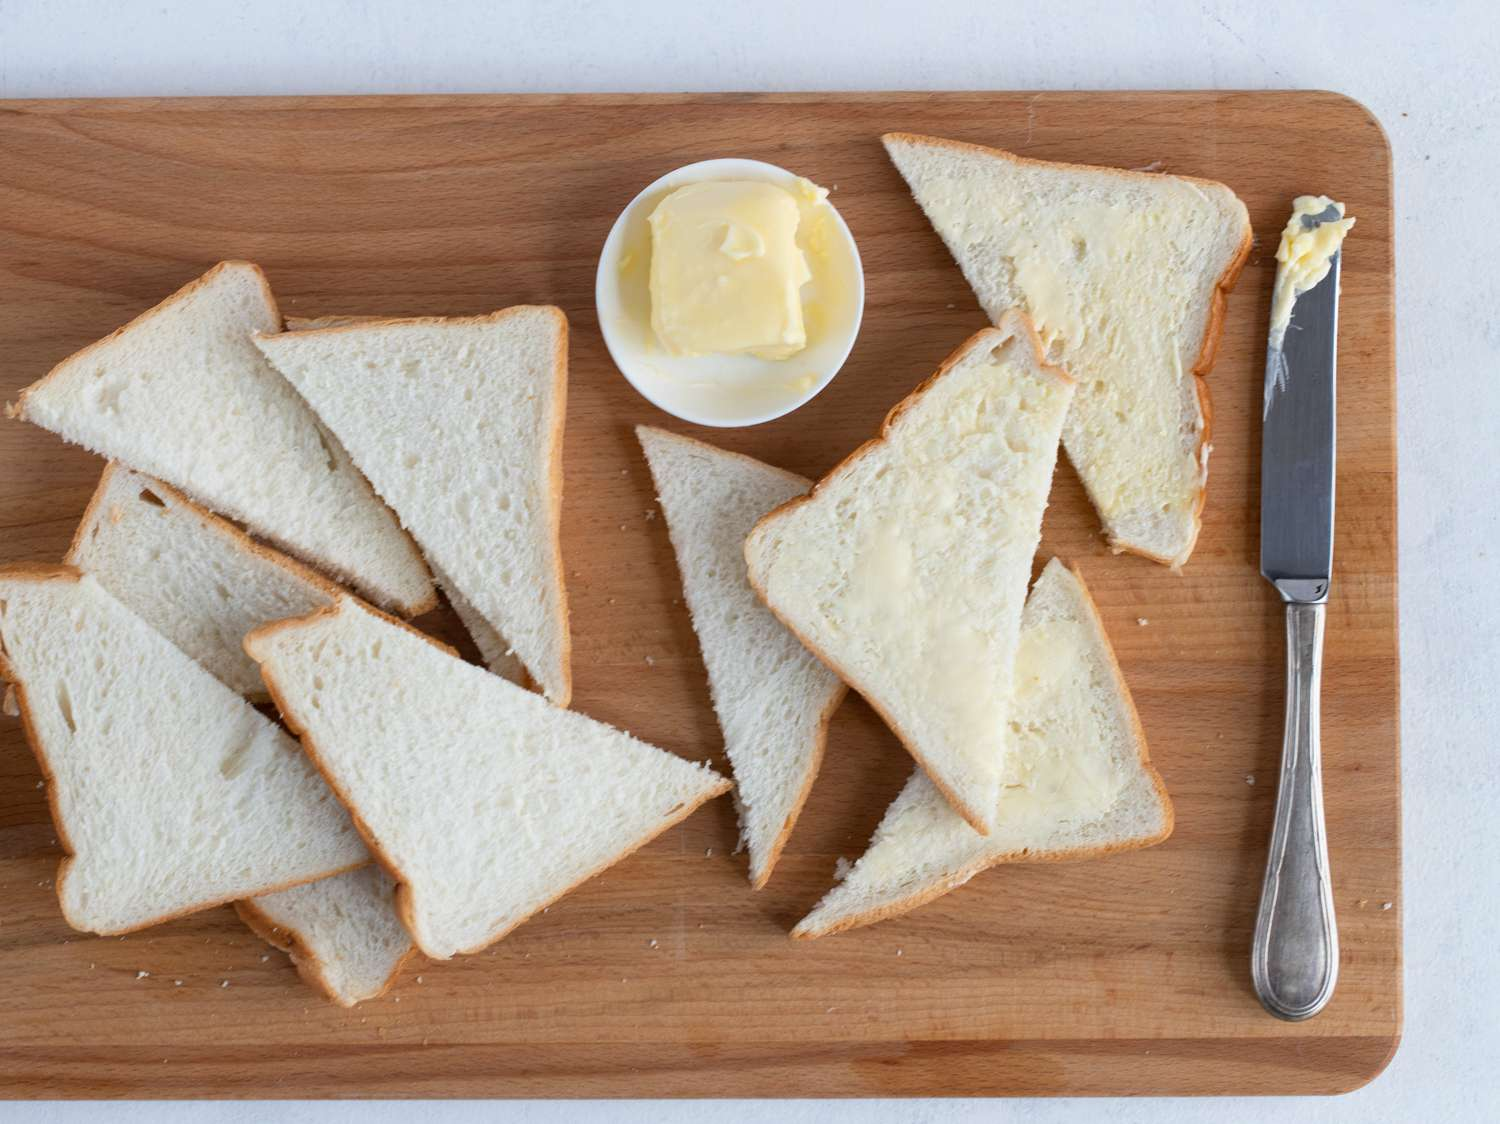 Spreading butter onto bread slices for pudding